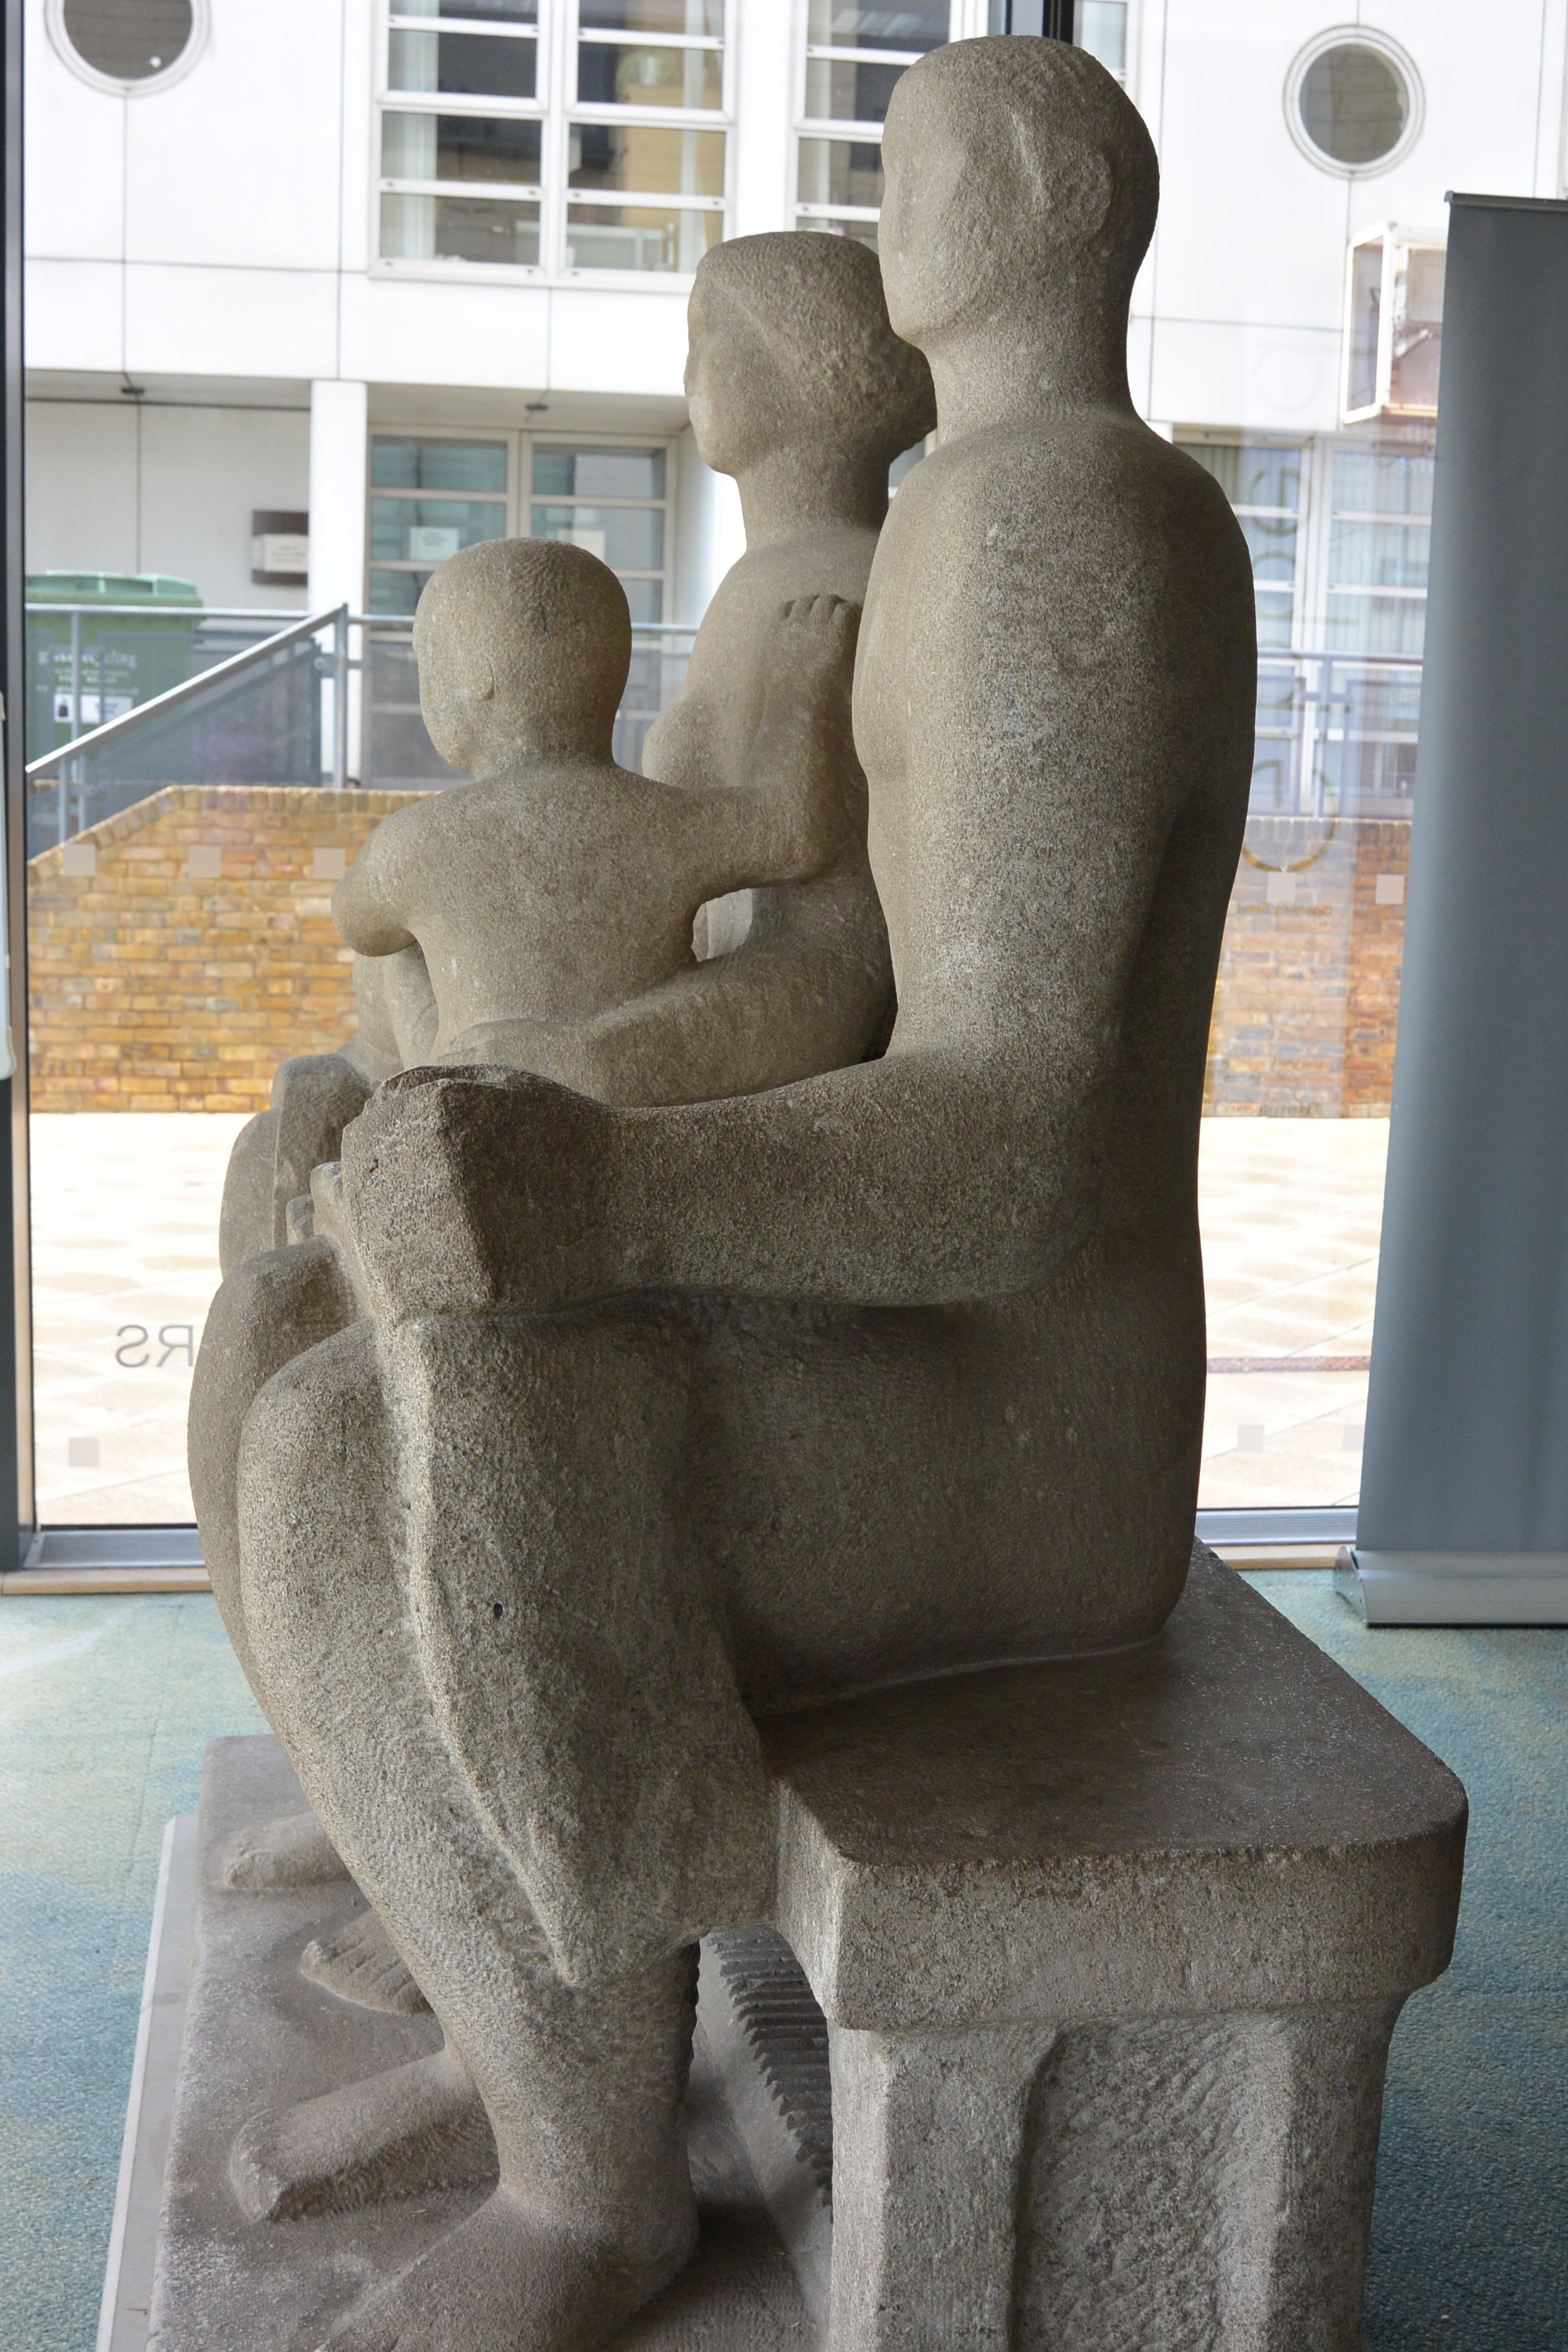 Henry Moore, Family Group, Harlow Art Trust / Gibberd Gallery (credit - Alina Congreve)